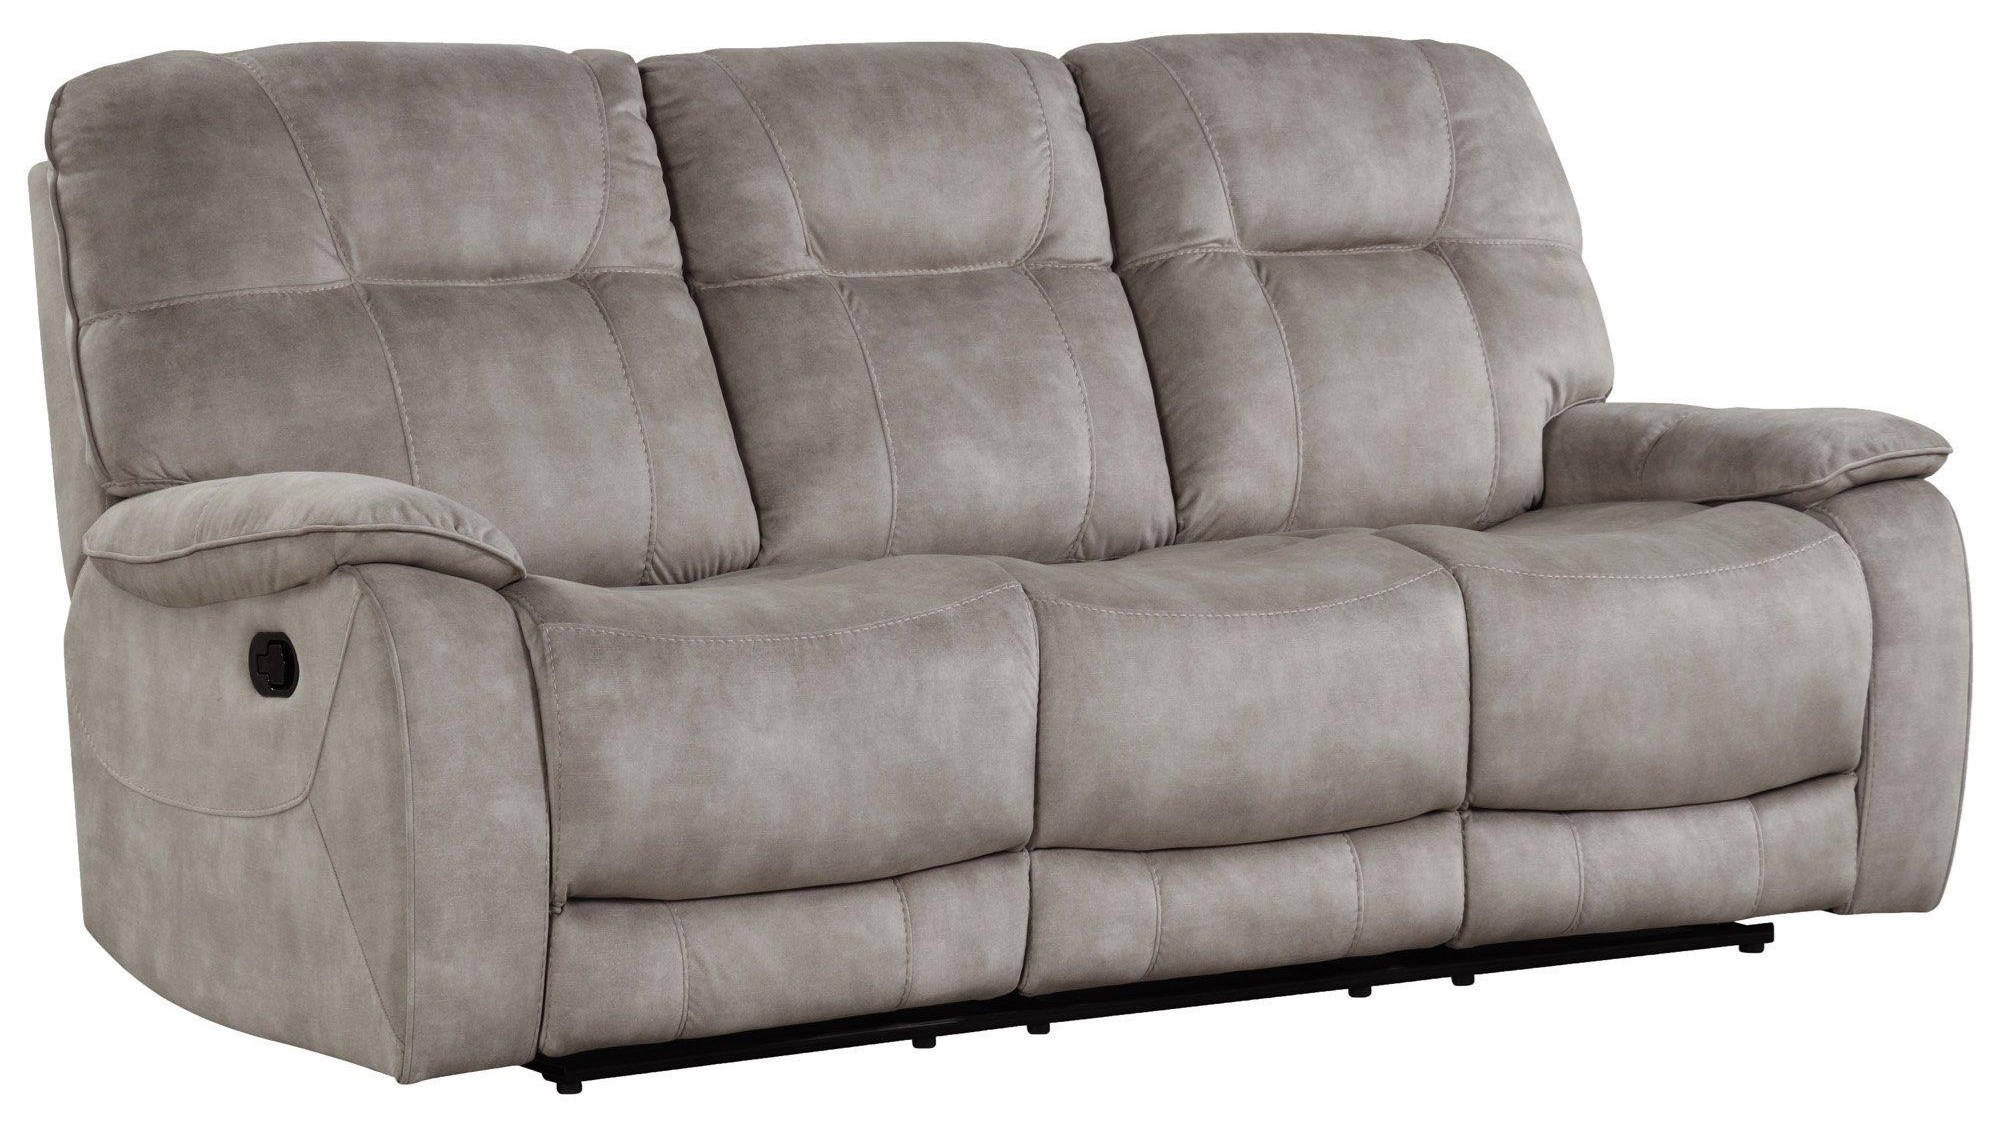 Cooper SHADOW NATURAL Manual Triple Reclining Sofa by Parker House at Johnny Janosik